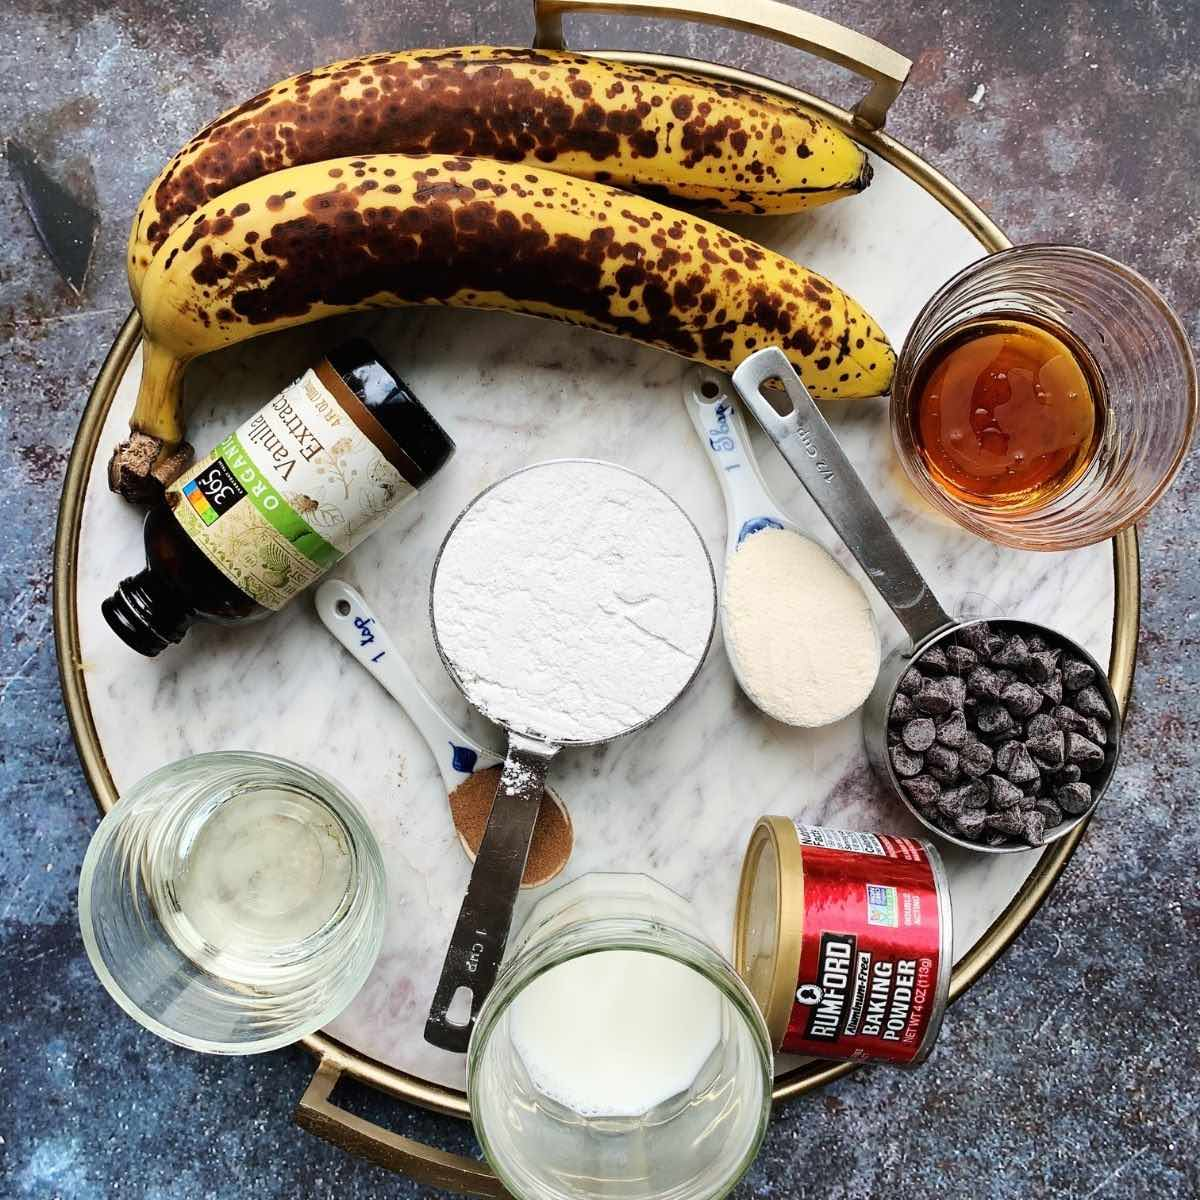 Ingredients on a white marble tray (banana, maple syrup, vanilla extract, gluten free flour, milk, chocolate chips, oil, baking powder).